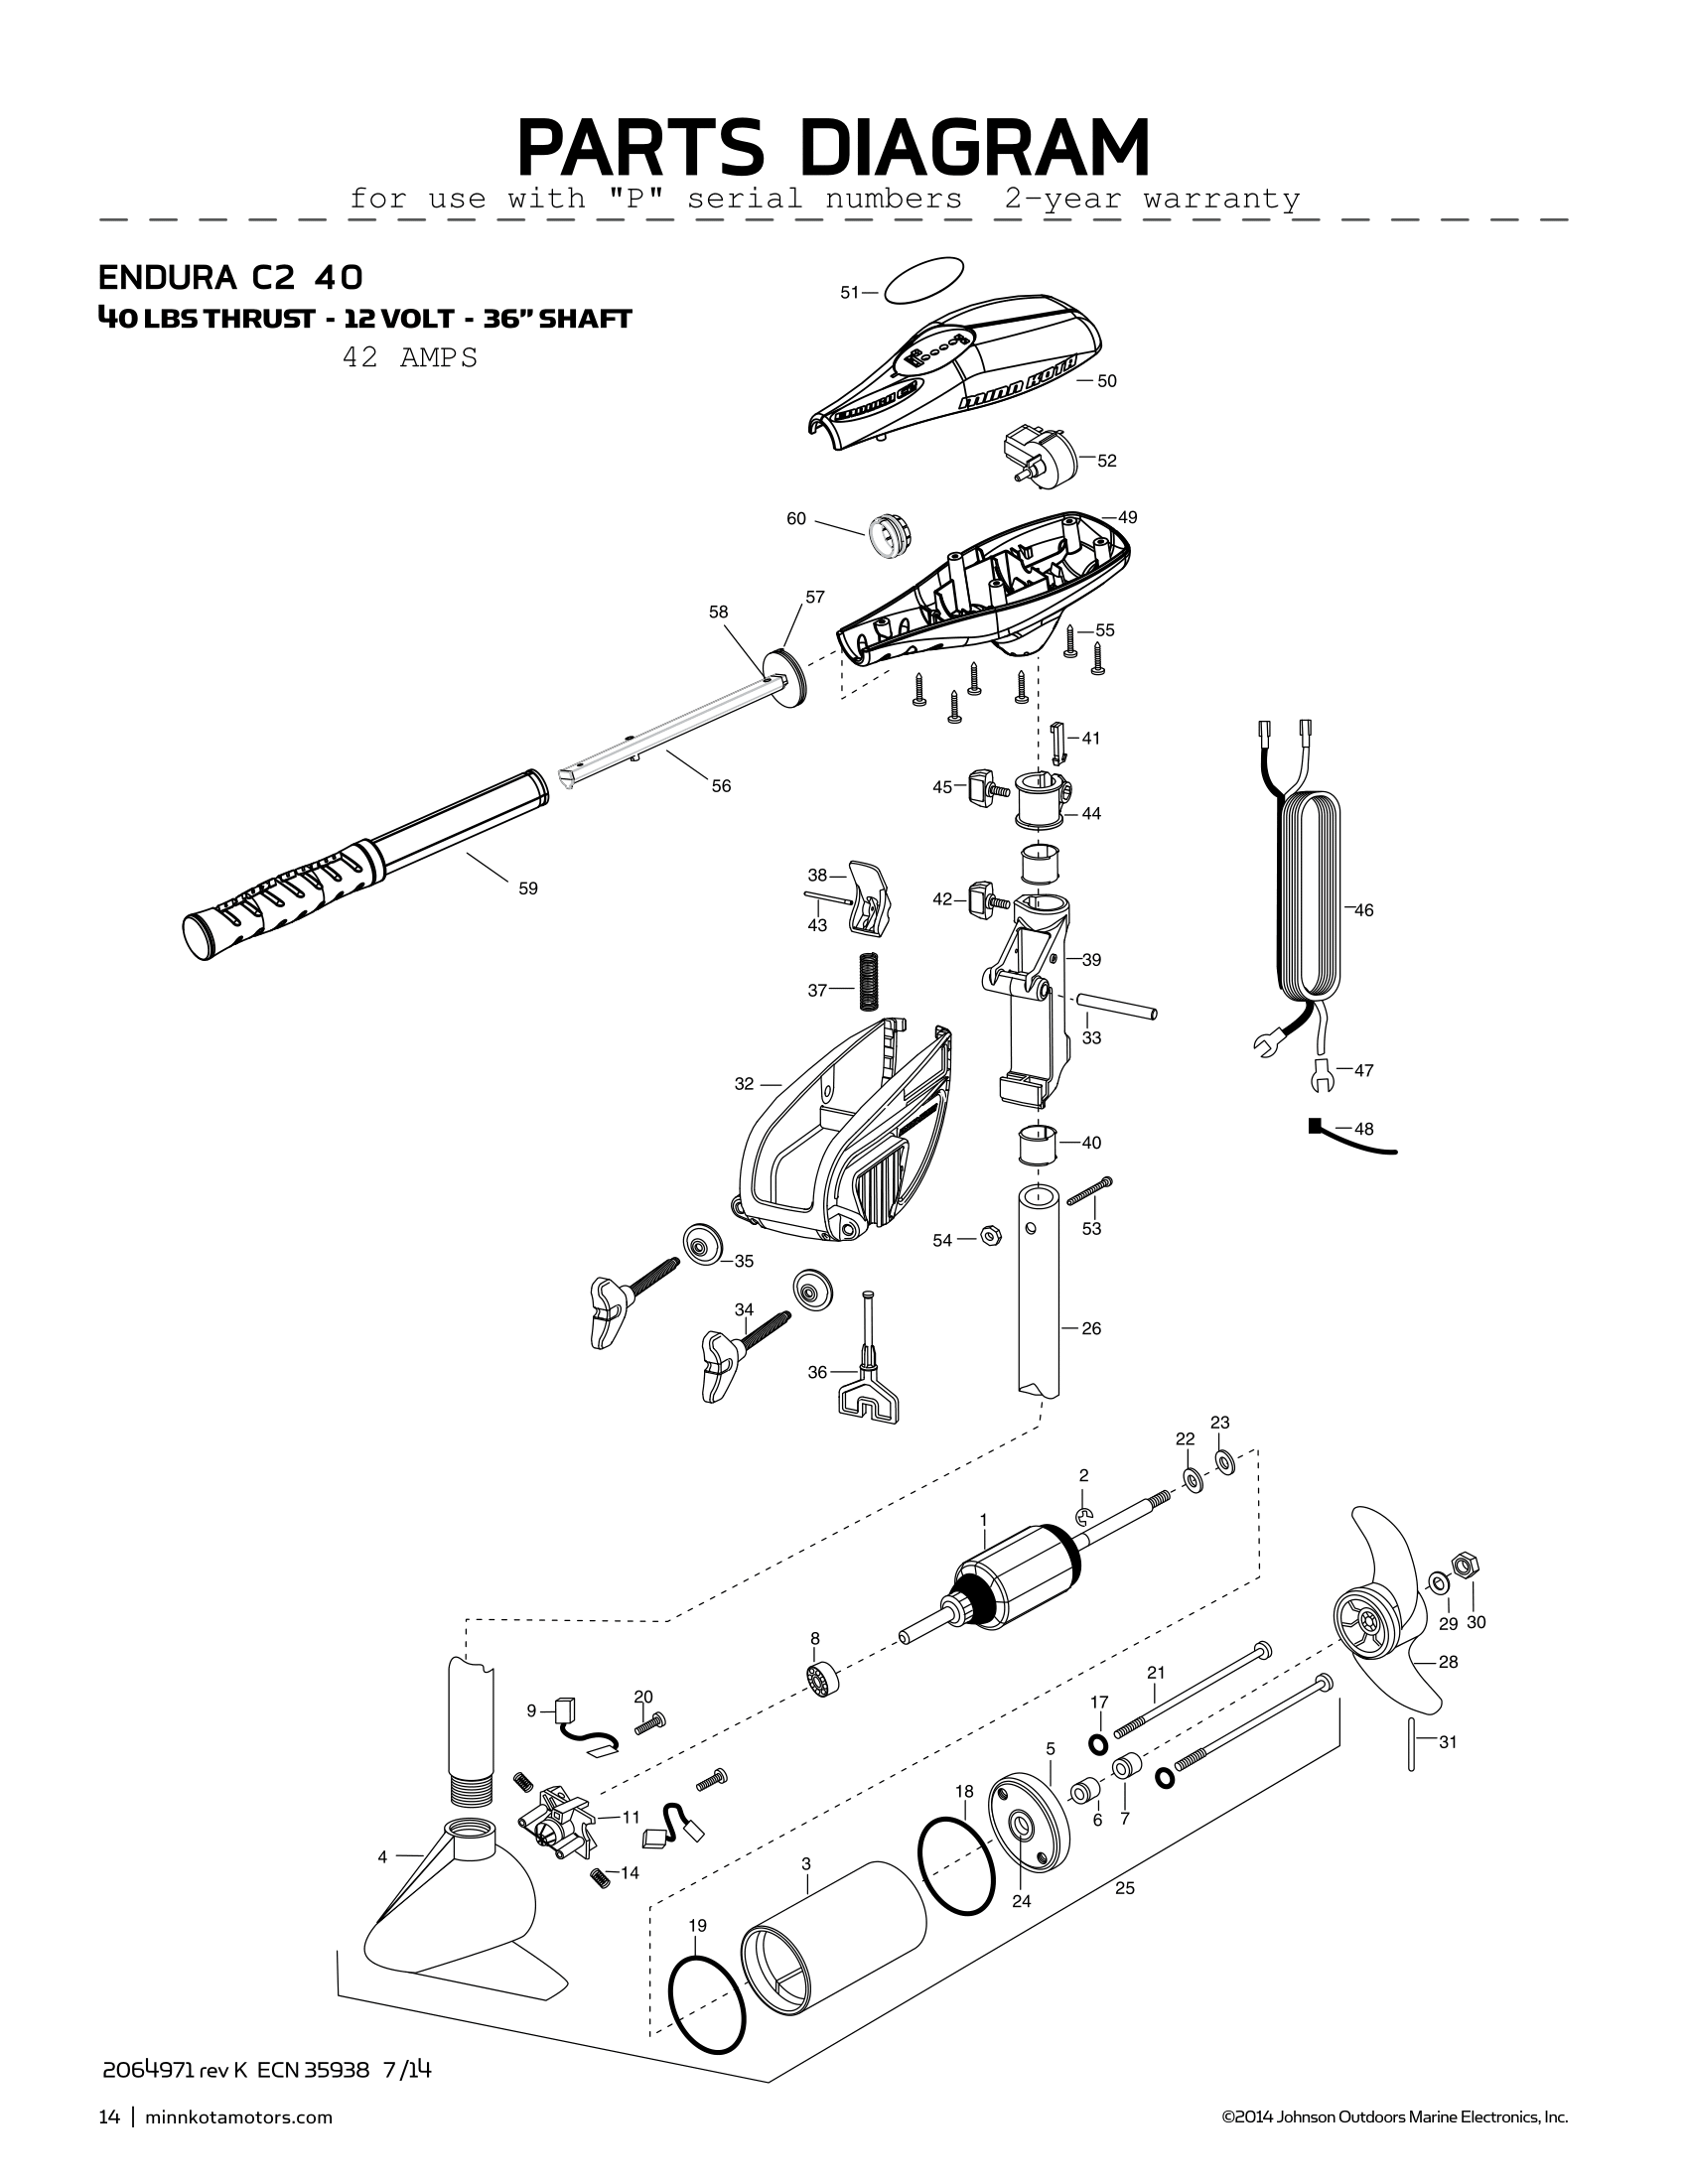 Minn Kota Endura 30 Parts Diagram ~ Wiring Diagram Portal ~ \u2022 Minn  Kota Turbo 65 Parts Minn Kota Talon Parts Diagram